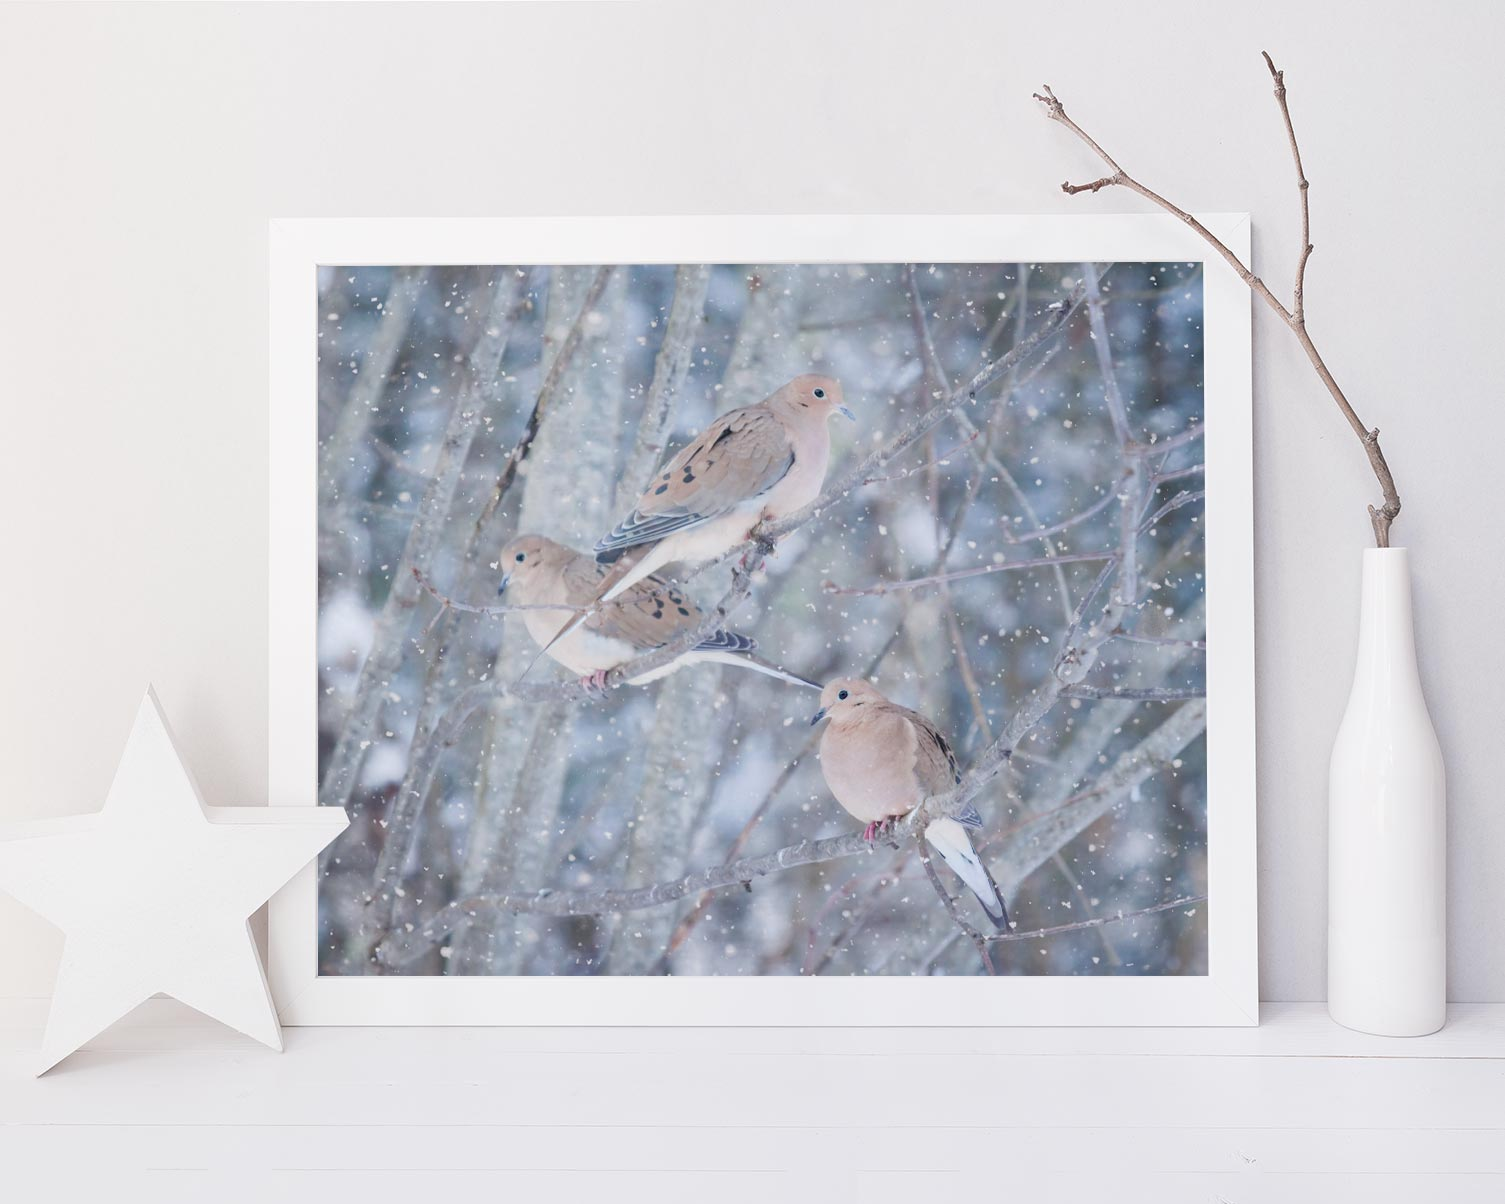 Mourning Doves in Snow No. 6